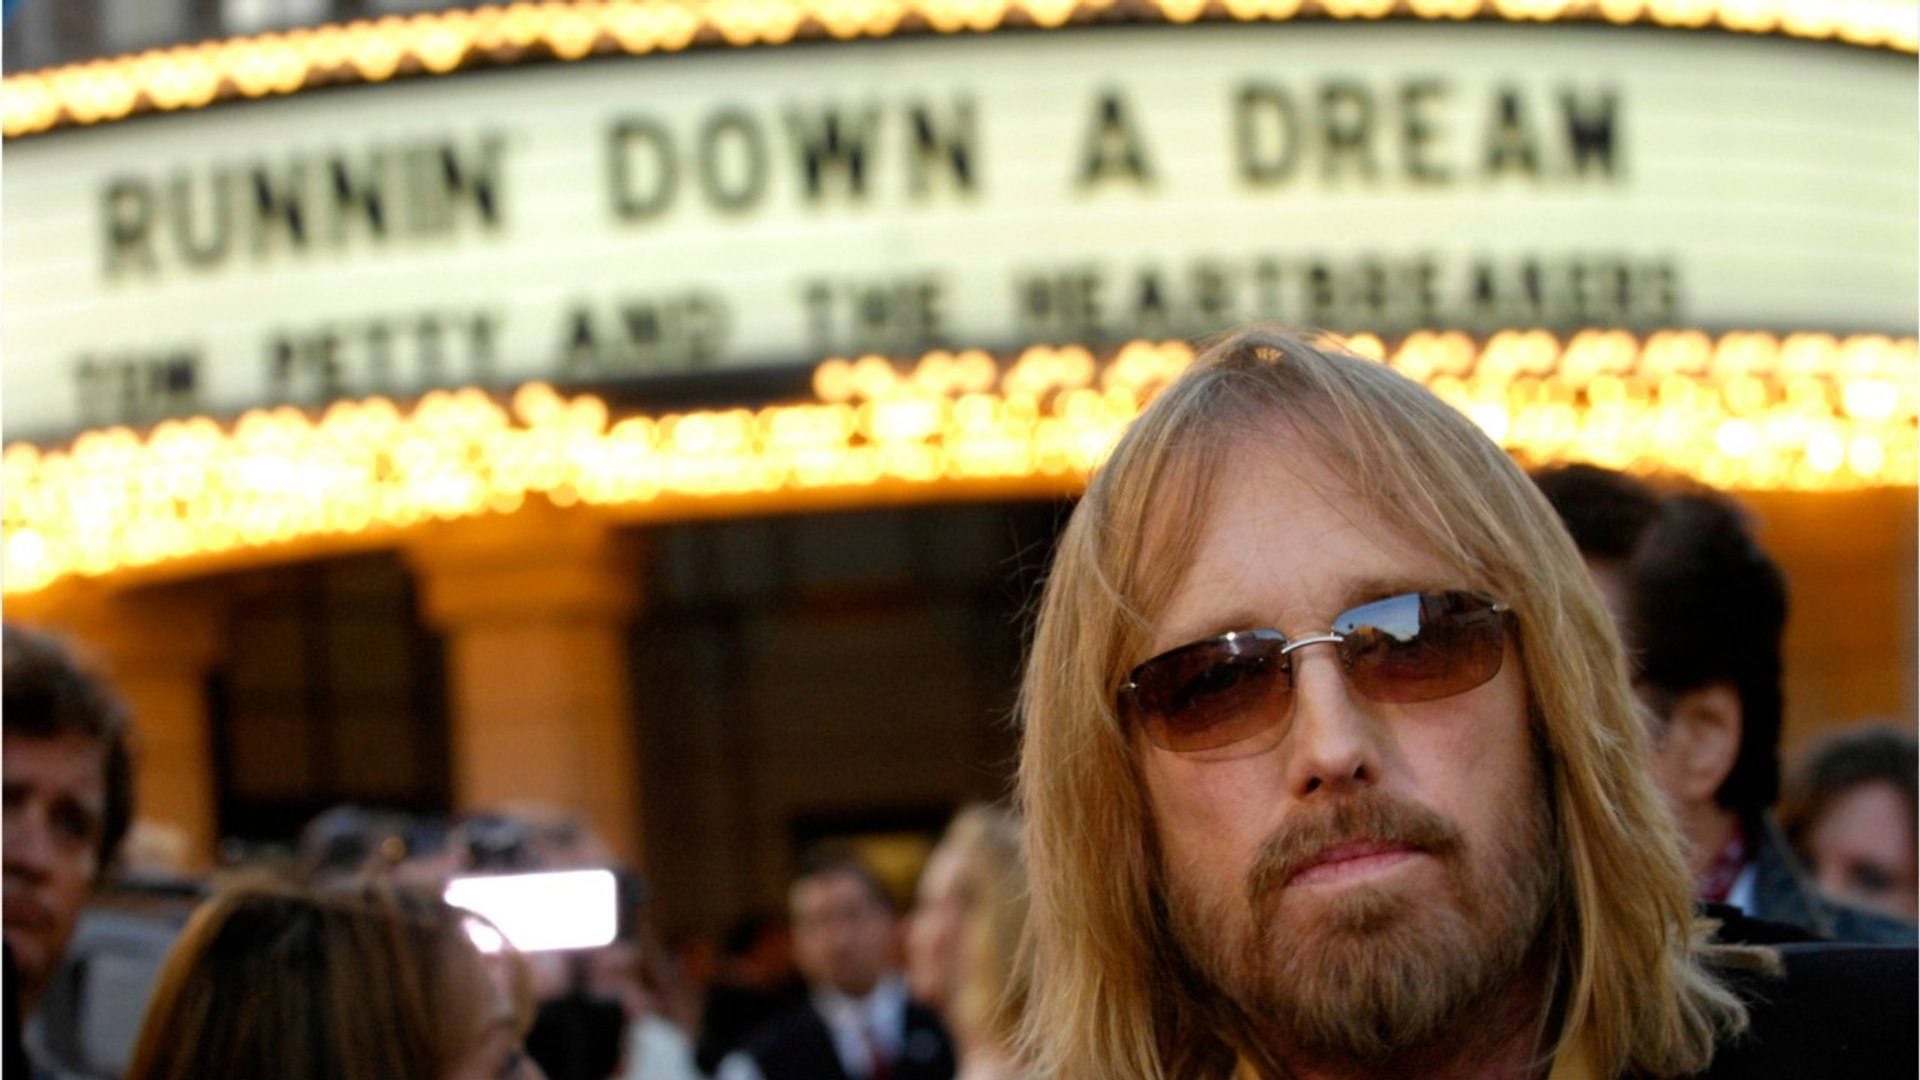 Fans And Musicians React To Tom Petty's Death